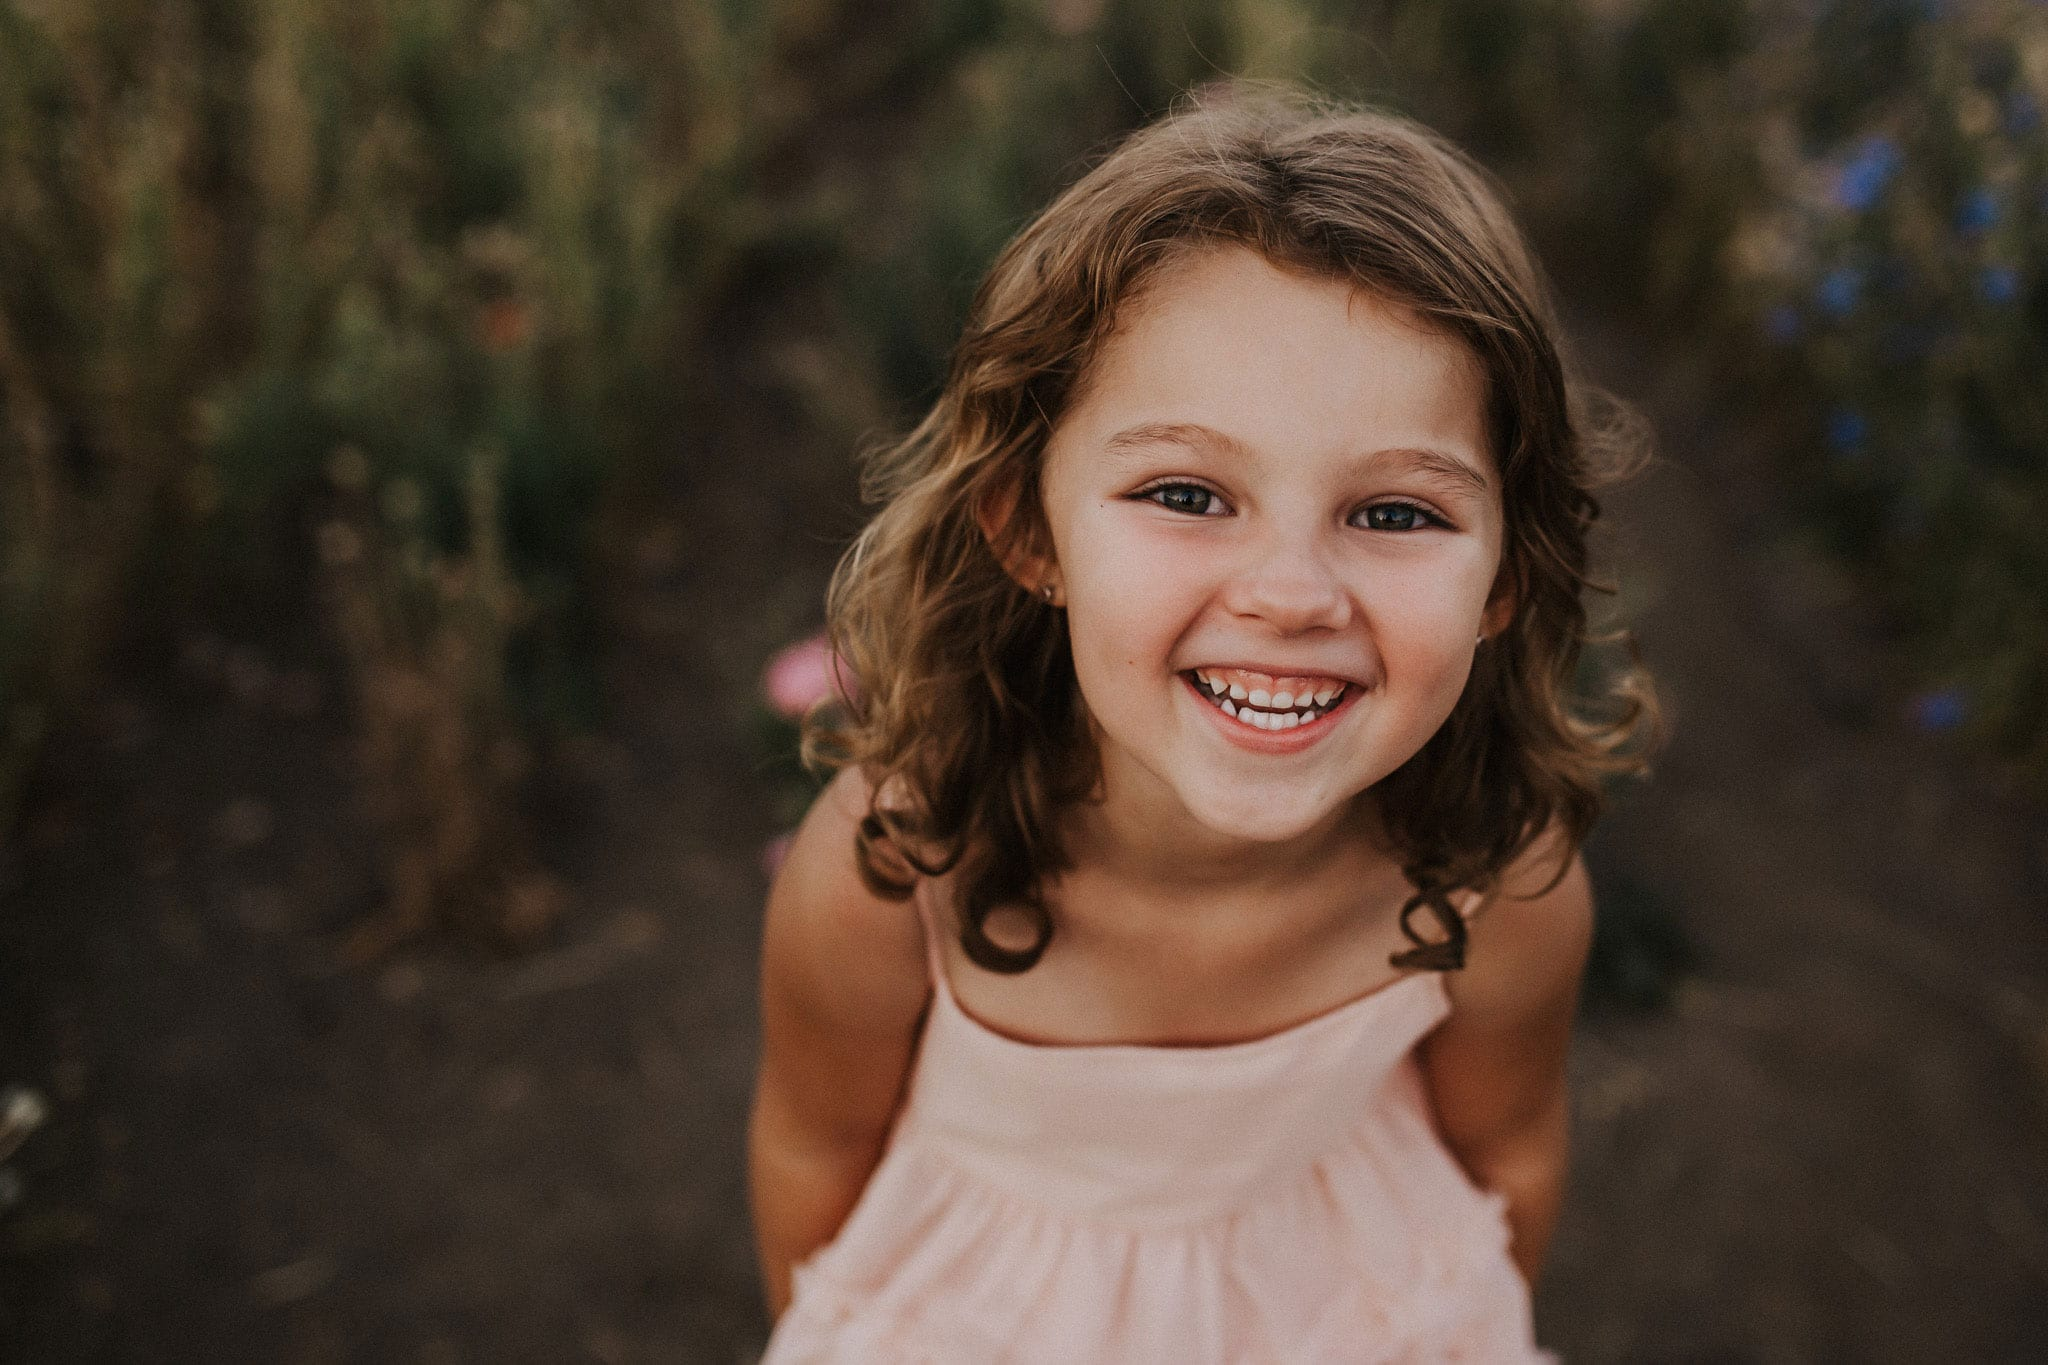 adorable laughing girl | best portland oregon family photographers